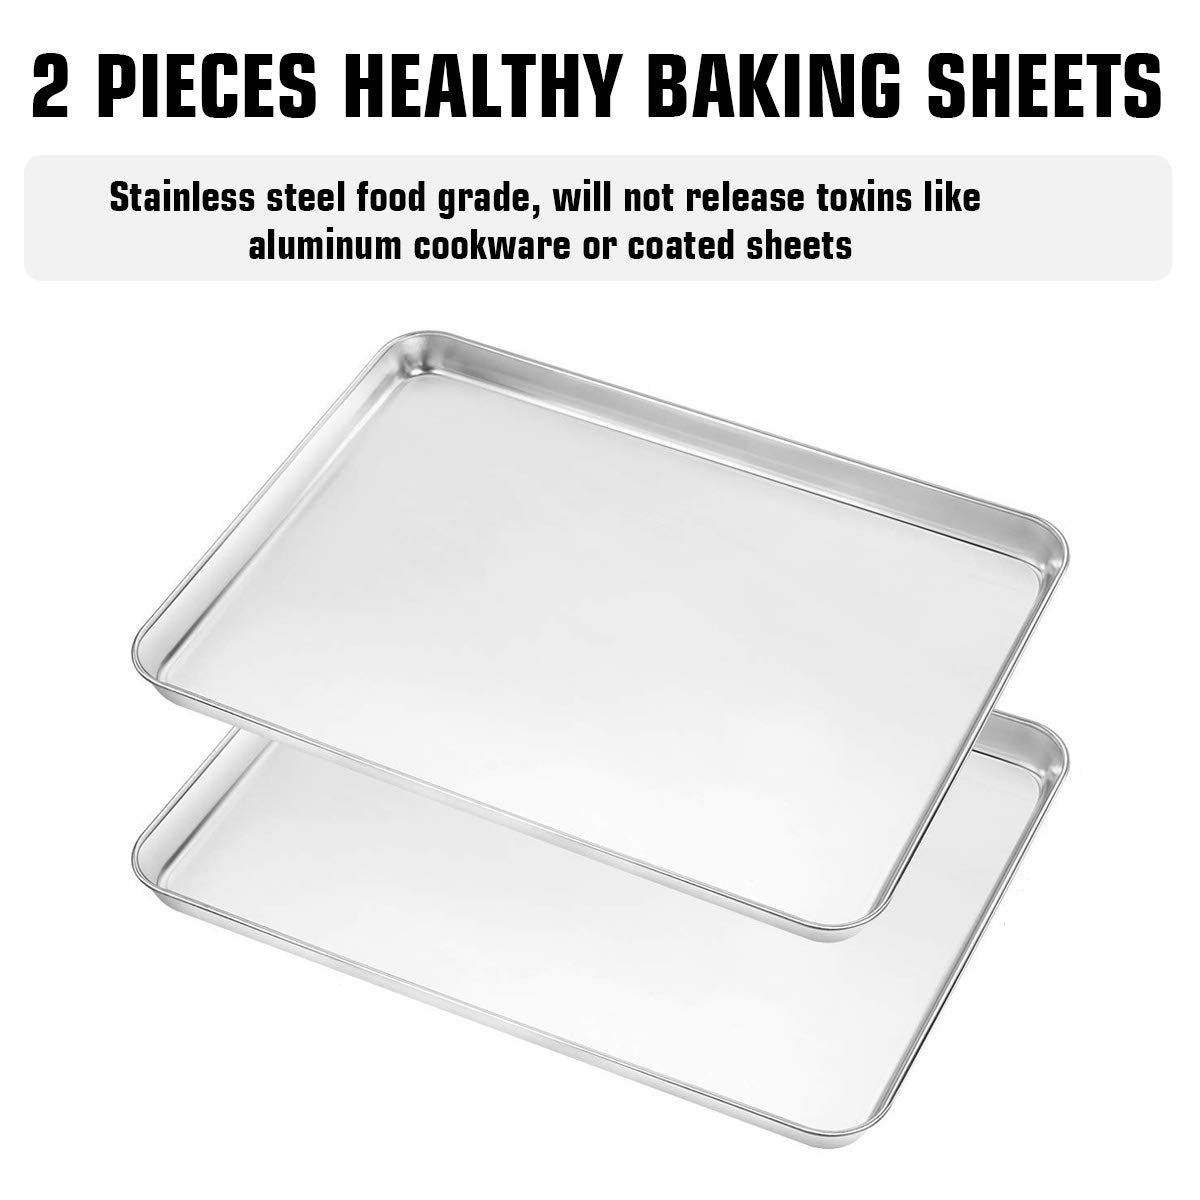 Footek Baking Sheets, Rack Set & Silicone Baking Mats, Stainless Steel Baking Pans Rectangle 16'' L×12'' W×1'' H, Non Toxic & Healthy, Mirror Polish & Easy Clean, Pack of 6 (2 Sheets + 2 Racks + 2 Mats) by Footek (Image #1)